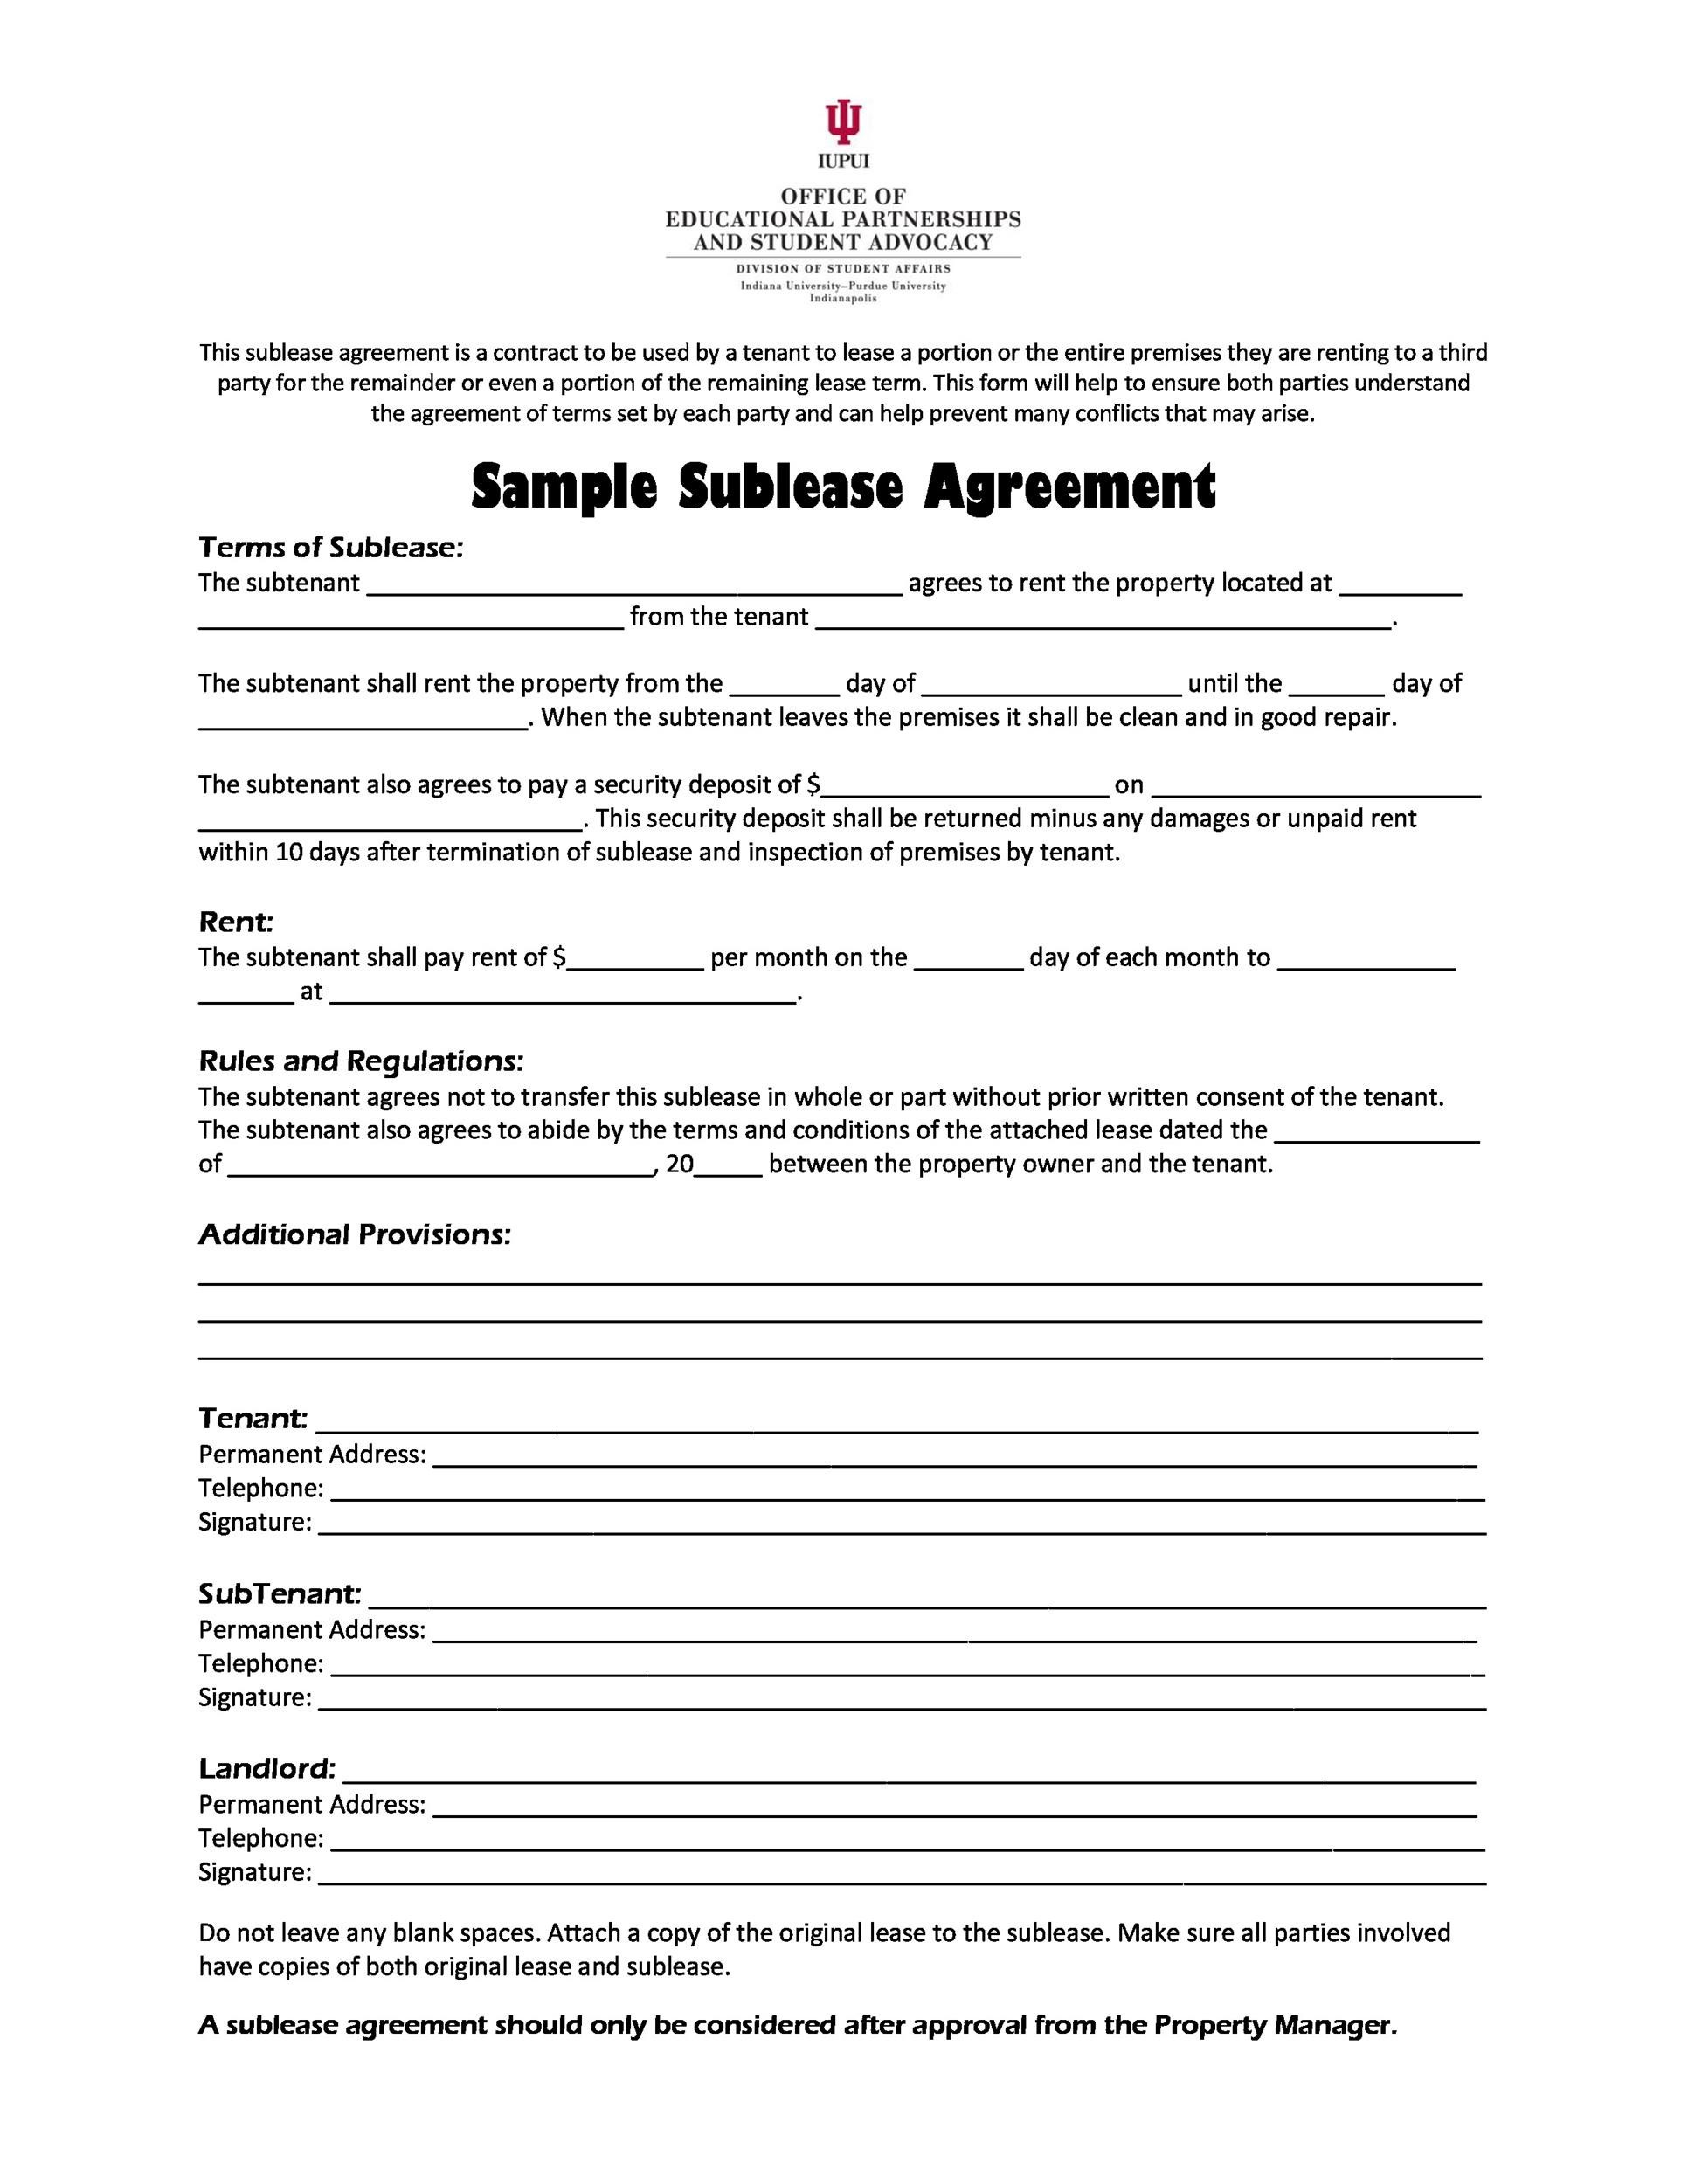 Sublease agreement florida for Subletting lease agreement template